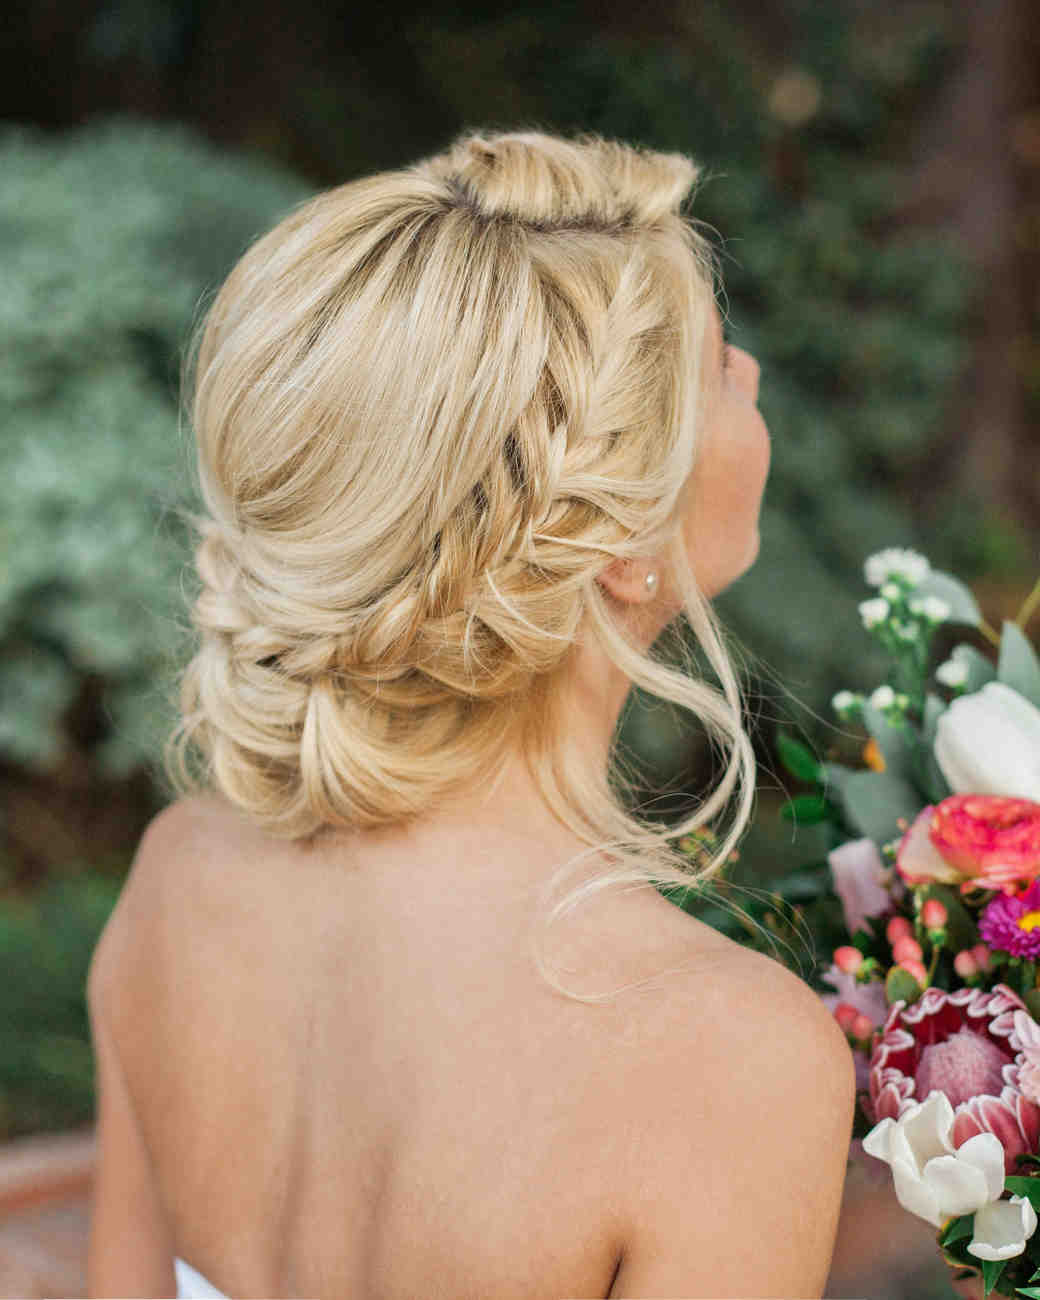 Braid Hairstyles For Wedding Party: 10 Ways To Upgrade The Wedding Braid